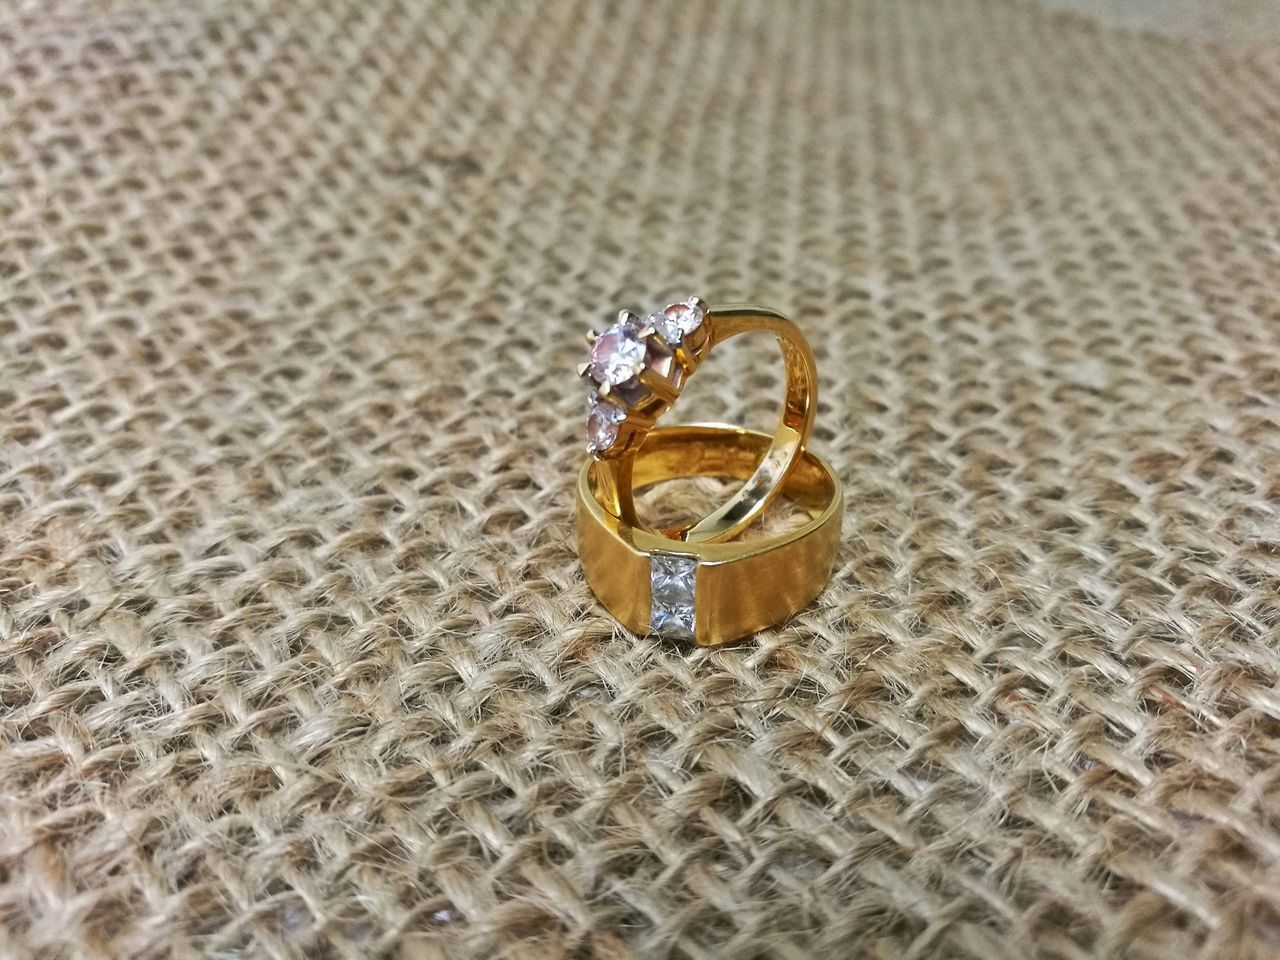 Jewelry Diamond - Gemstone Ring Wealth Wedding Luxury Gold Colored Diamond Ring Engagement Ring Gemstone  Gold No People Precious Gem Finger Ring Indoors  Close-up Day